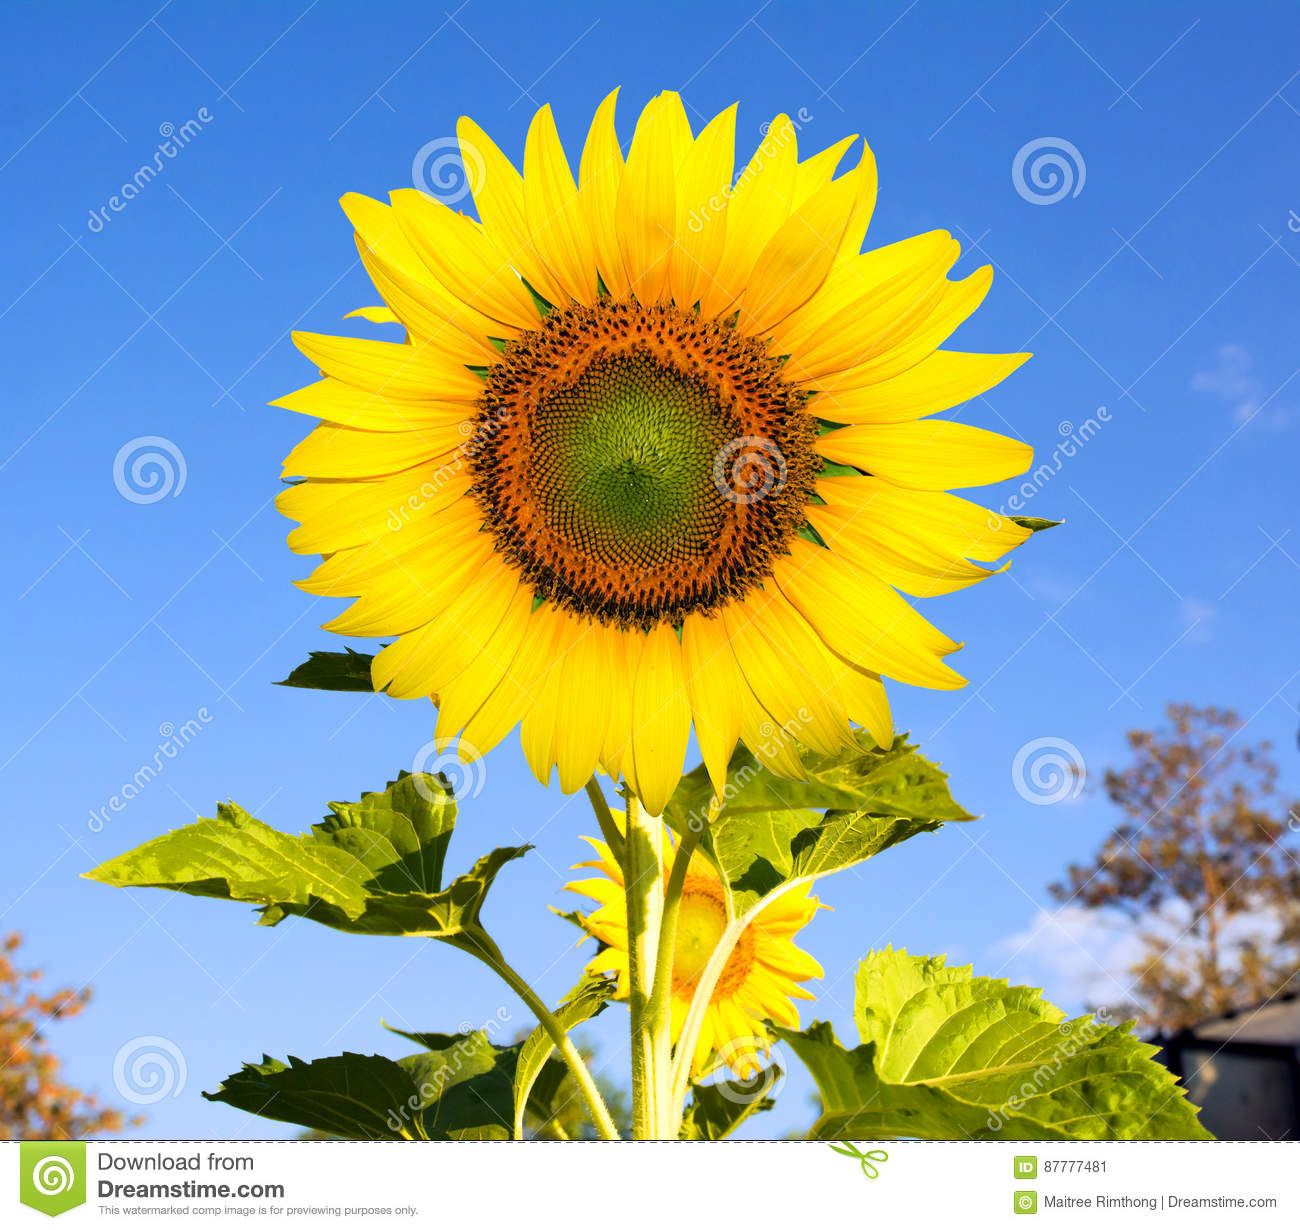 Beautiful Sunflower Flowers Blooming In The Field Stock Image     Download Beautiful Sunflower Flowers Blooming In The Field Stock Image    Image of sunflowers  nature